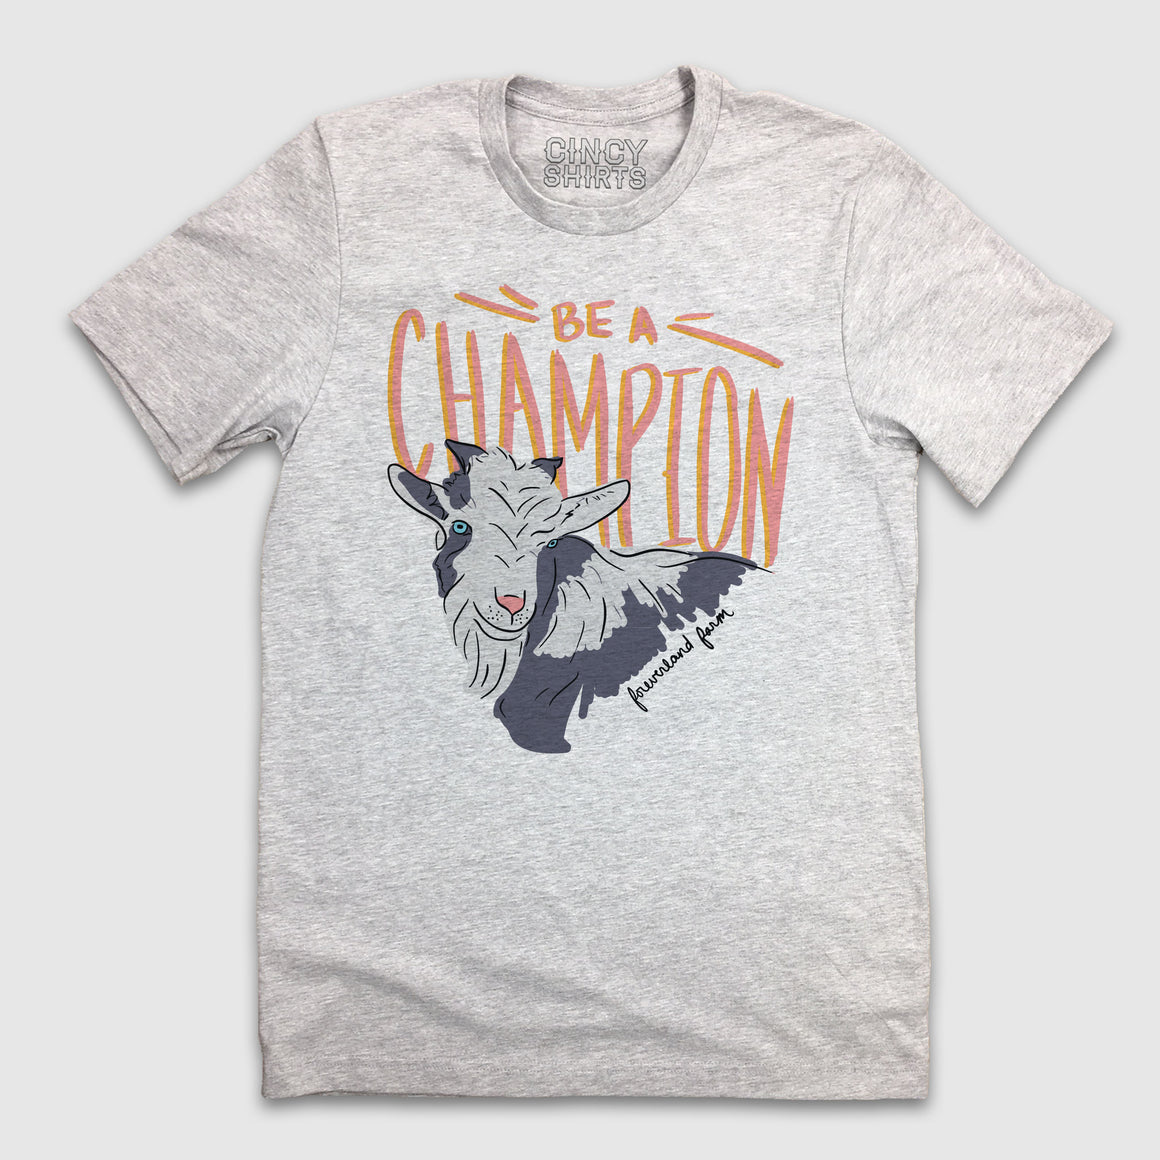 Champion - Foreverland Farm - Cincy Shirts